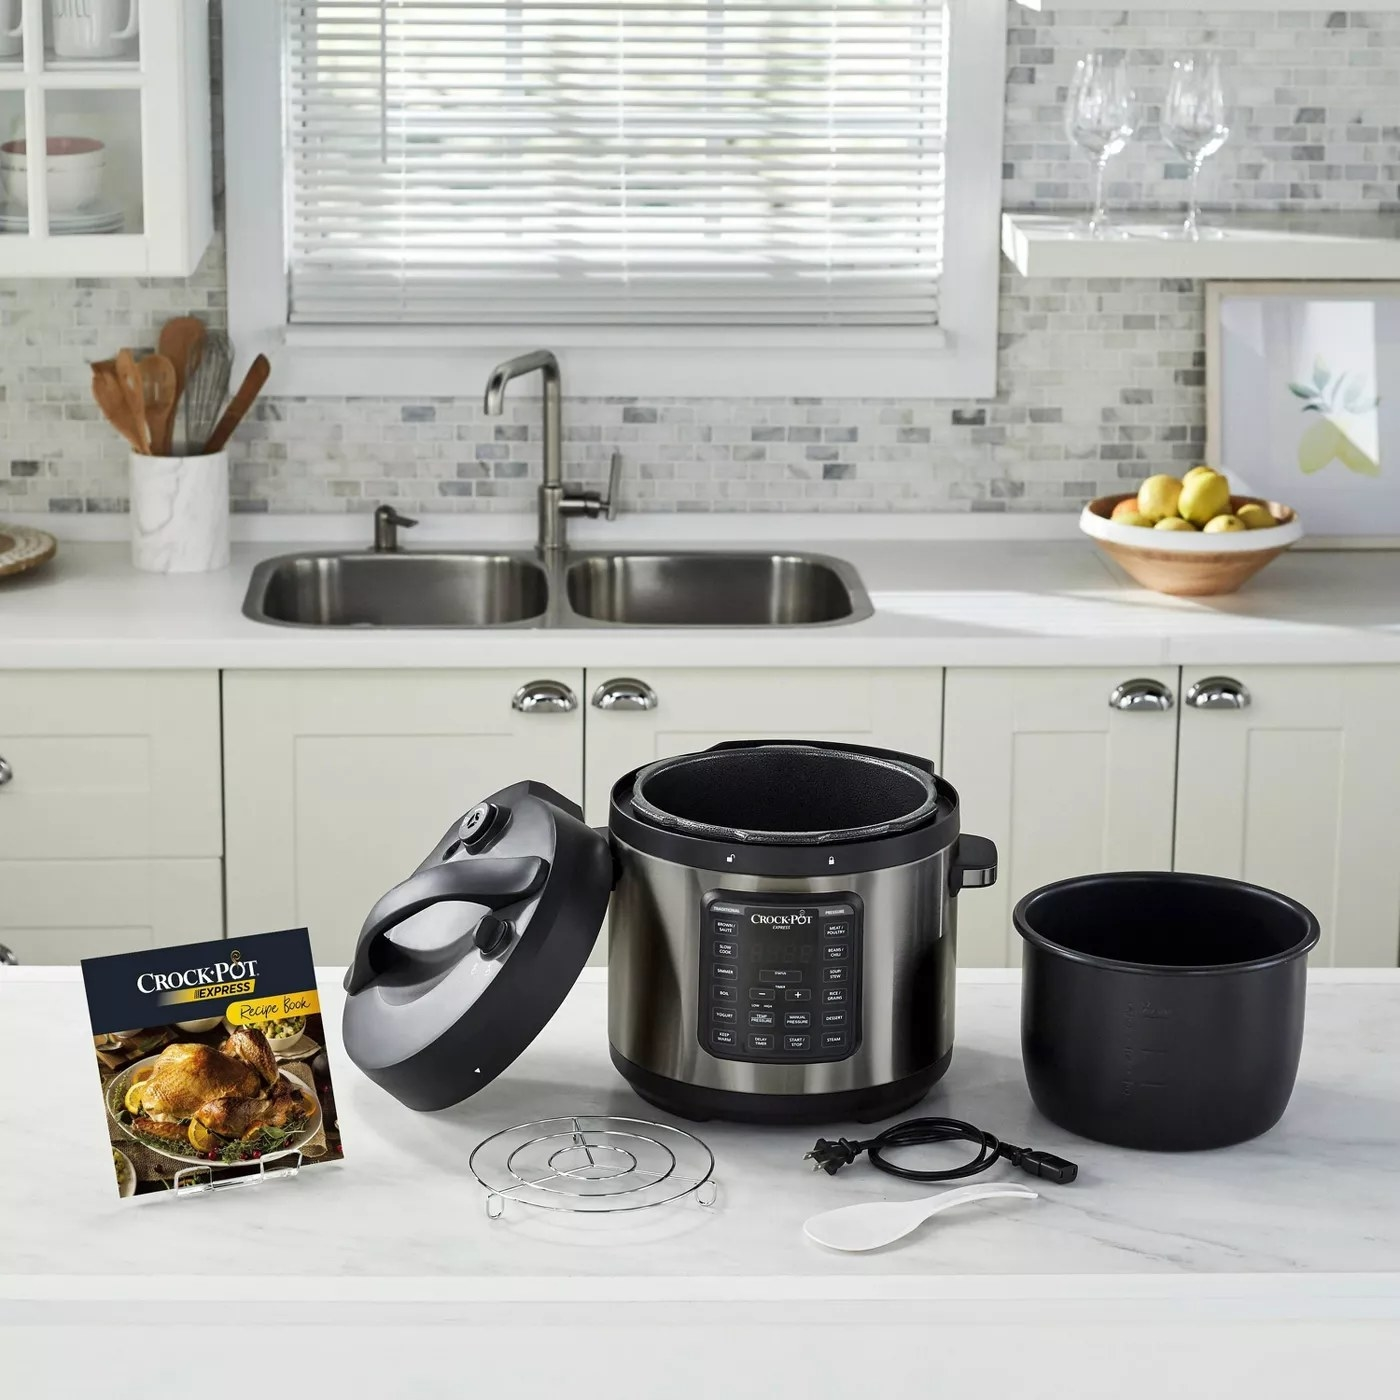 The pressure cooker with the removable cooking pot, steaming rack, serving spoon, and recipe book